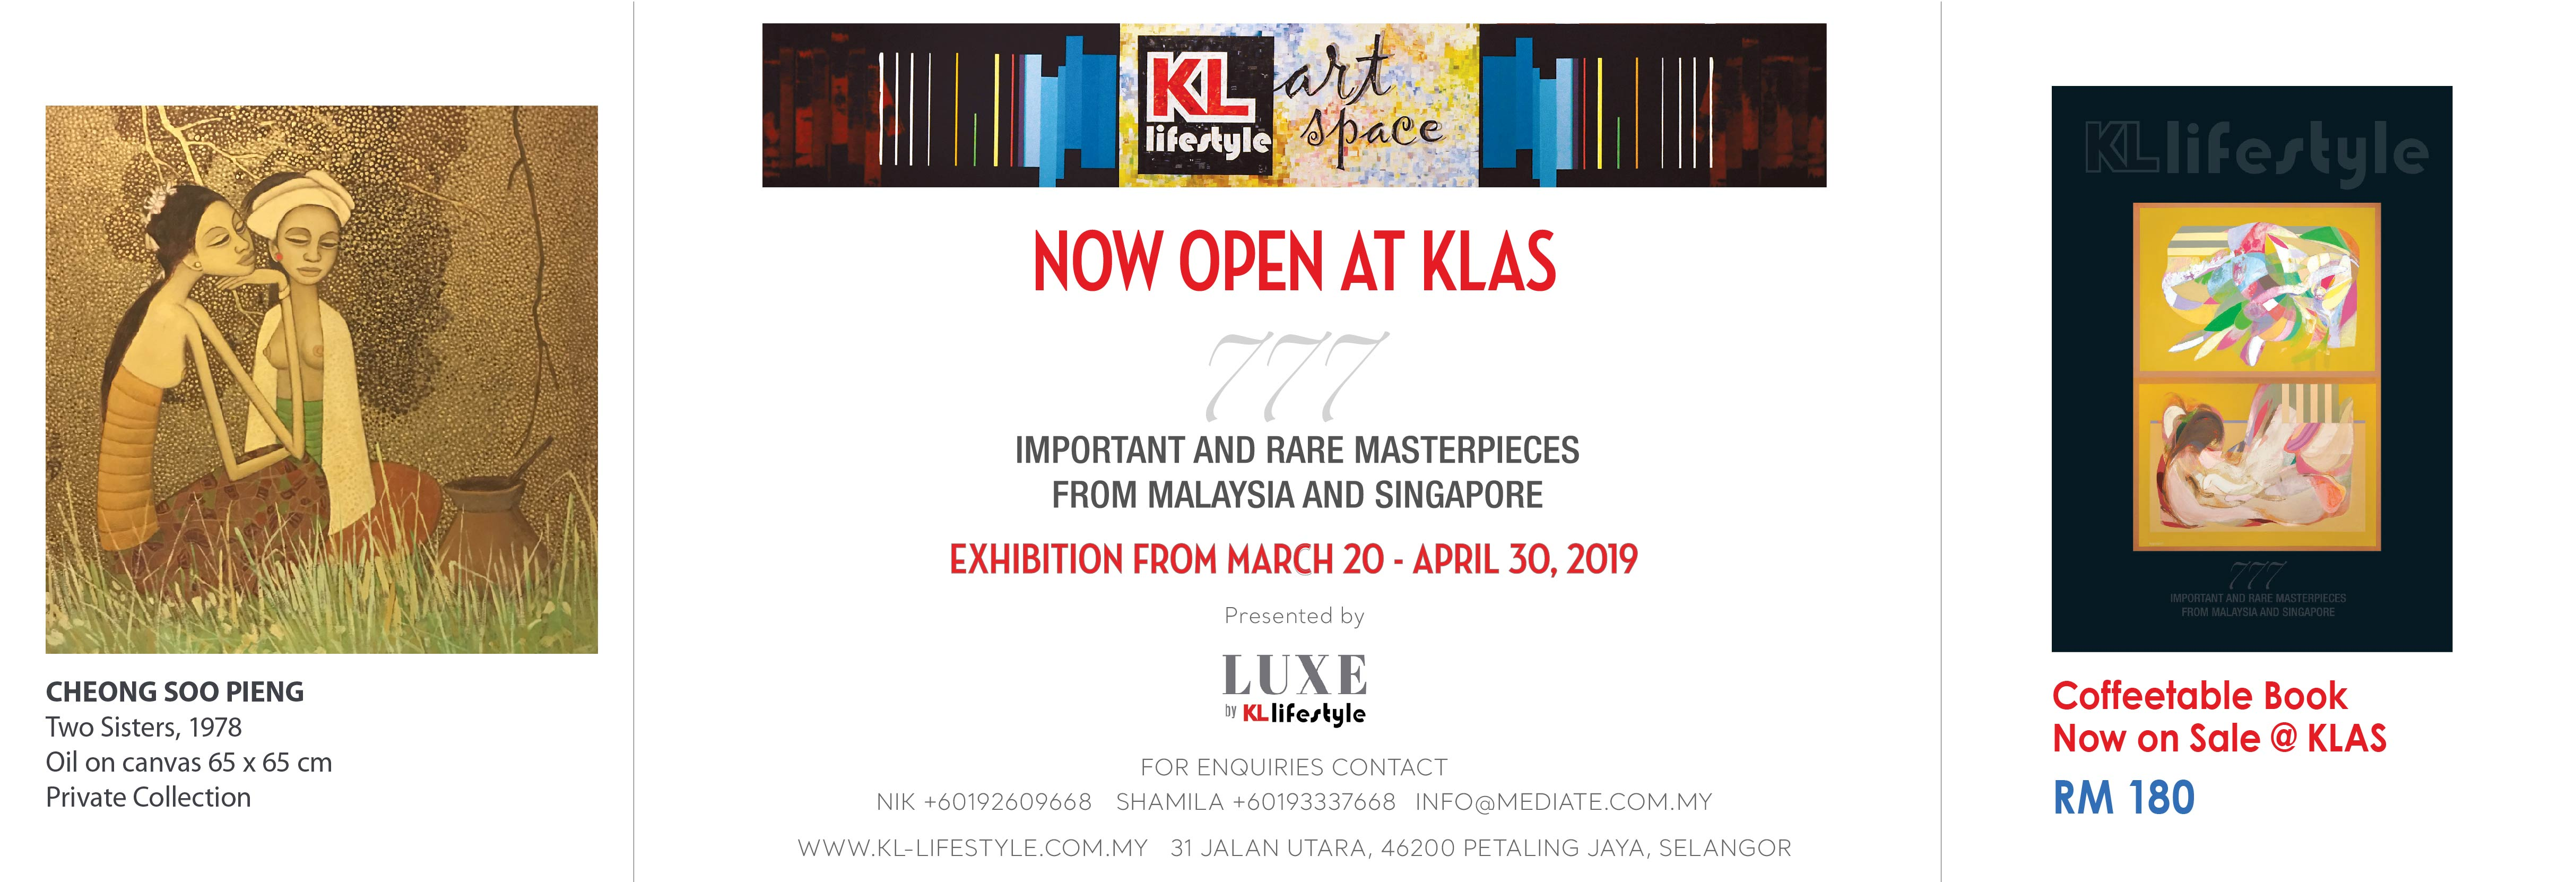 777 NOW OPEN AT KLAS COFFEE BOOK WEB BANNER-01